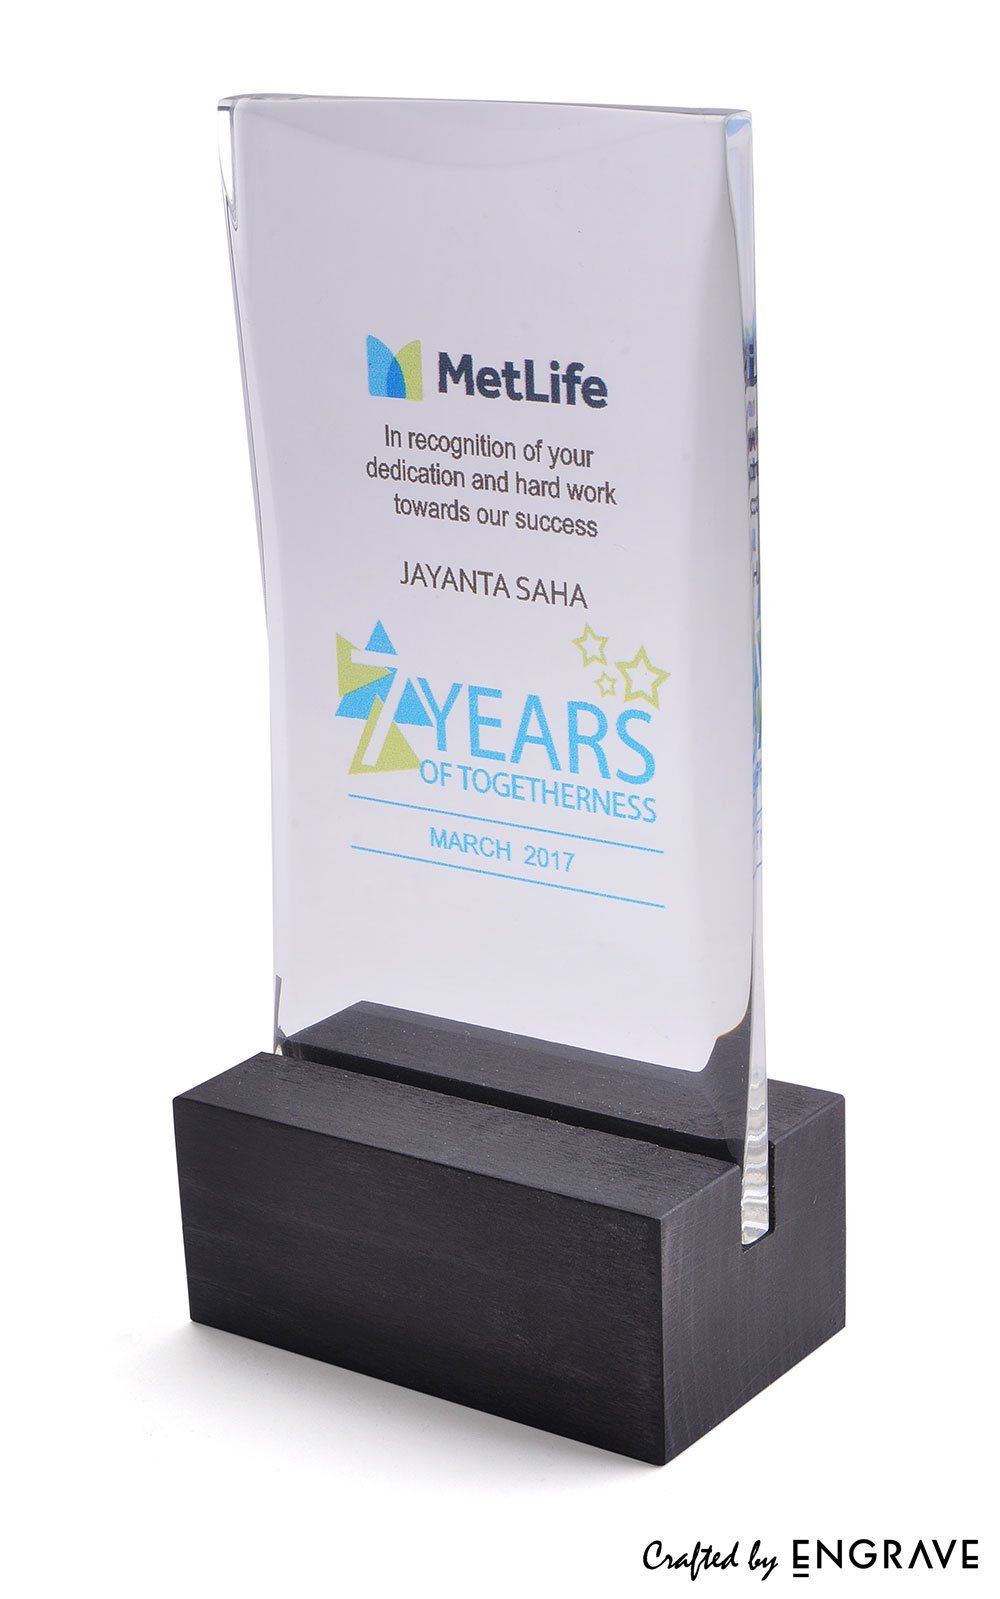 metlife-long-service-awards-2.jpg